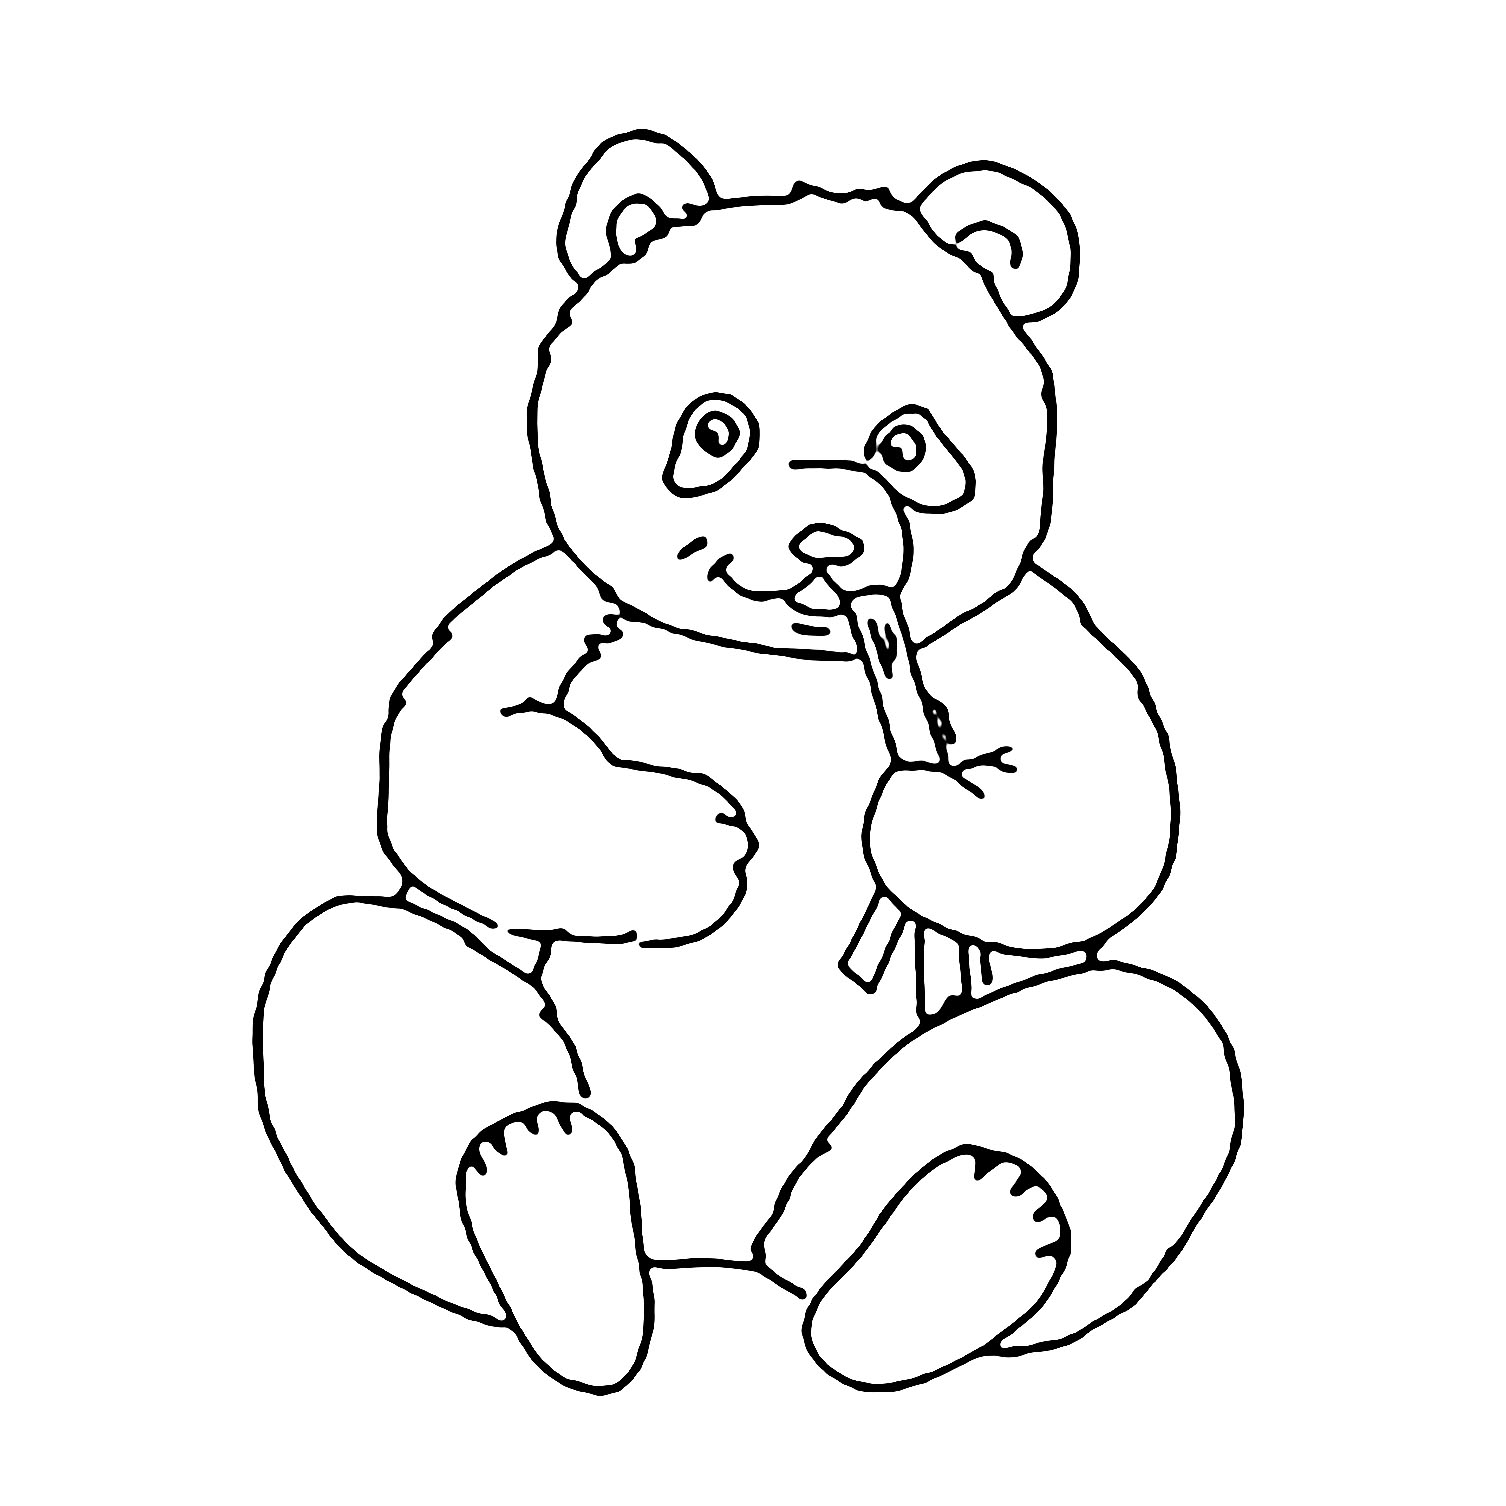 Coloring And Drawing Please Mr Panda Coloring Pages